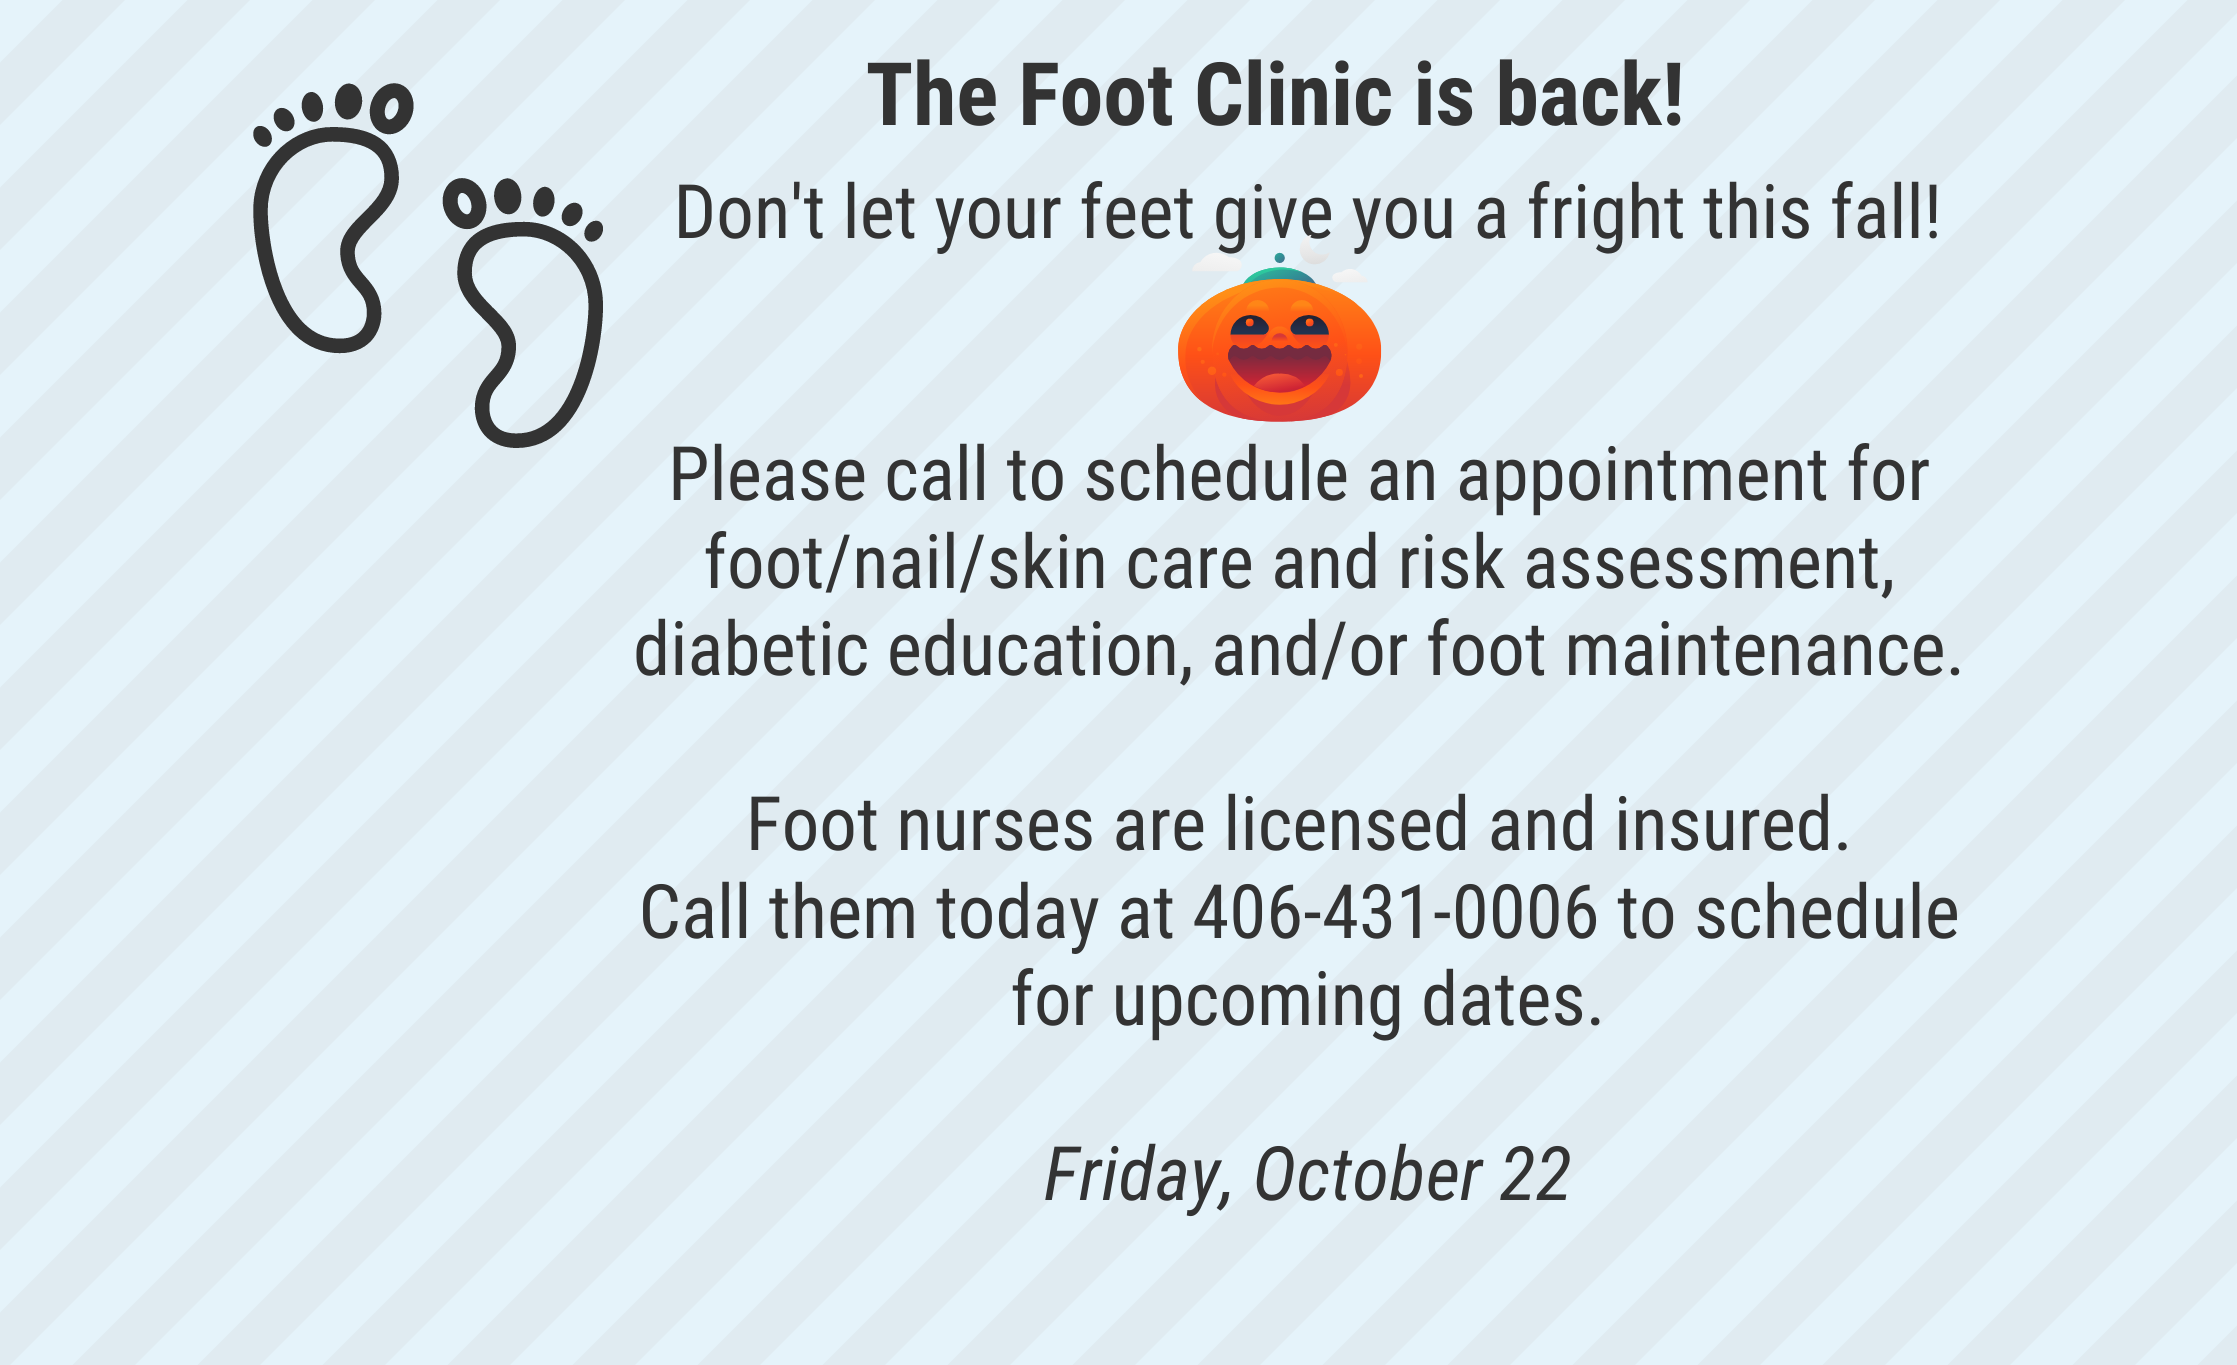 Please call to schedule an appointment for foot/nail/skin care and risk assessment, diabetic education, and/or foot maintenance.